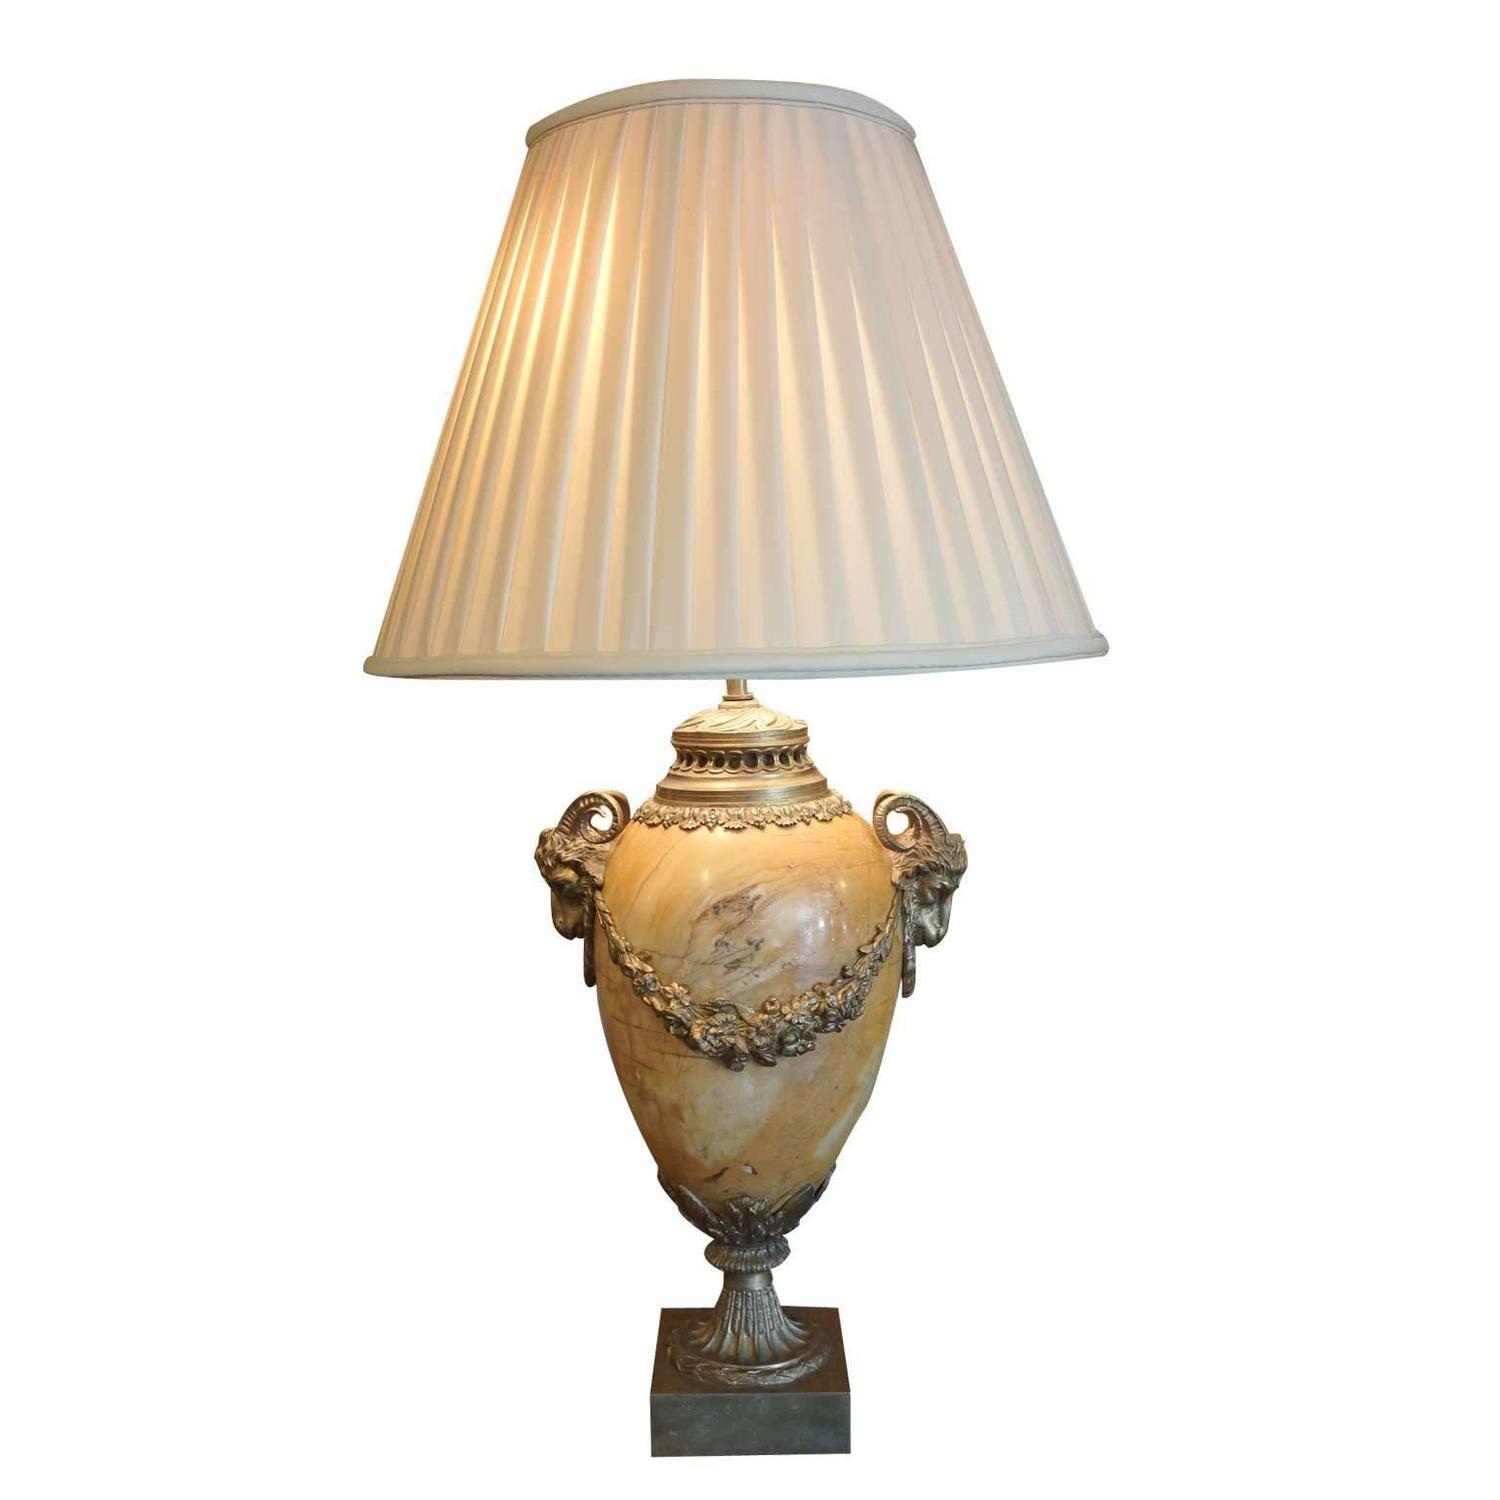 19th Century French Marble Lamp Embellished With Ormolu